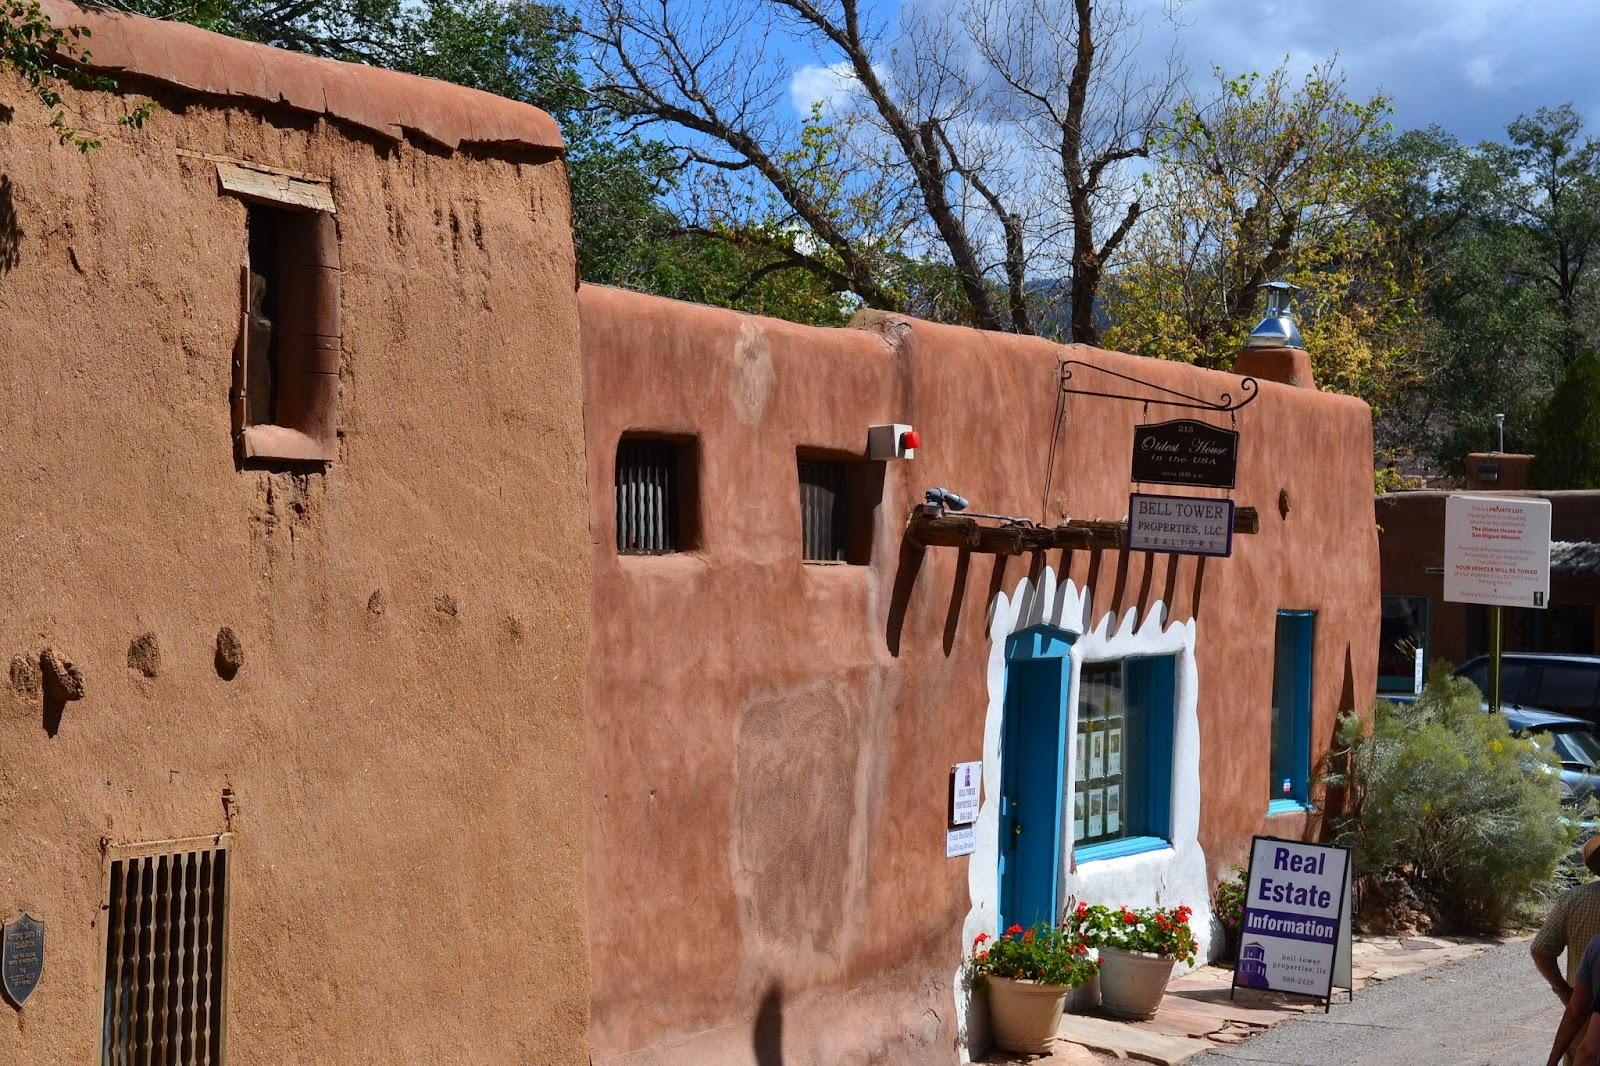 Victoria In Japan Land: The Oldest House in Santa Fe, NM